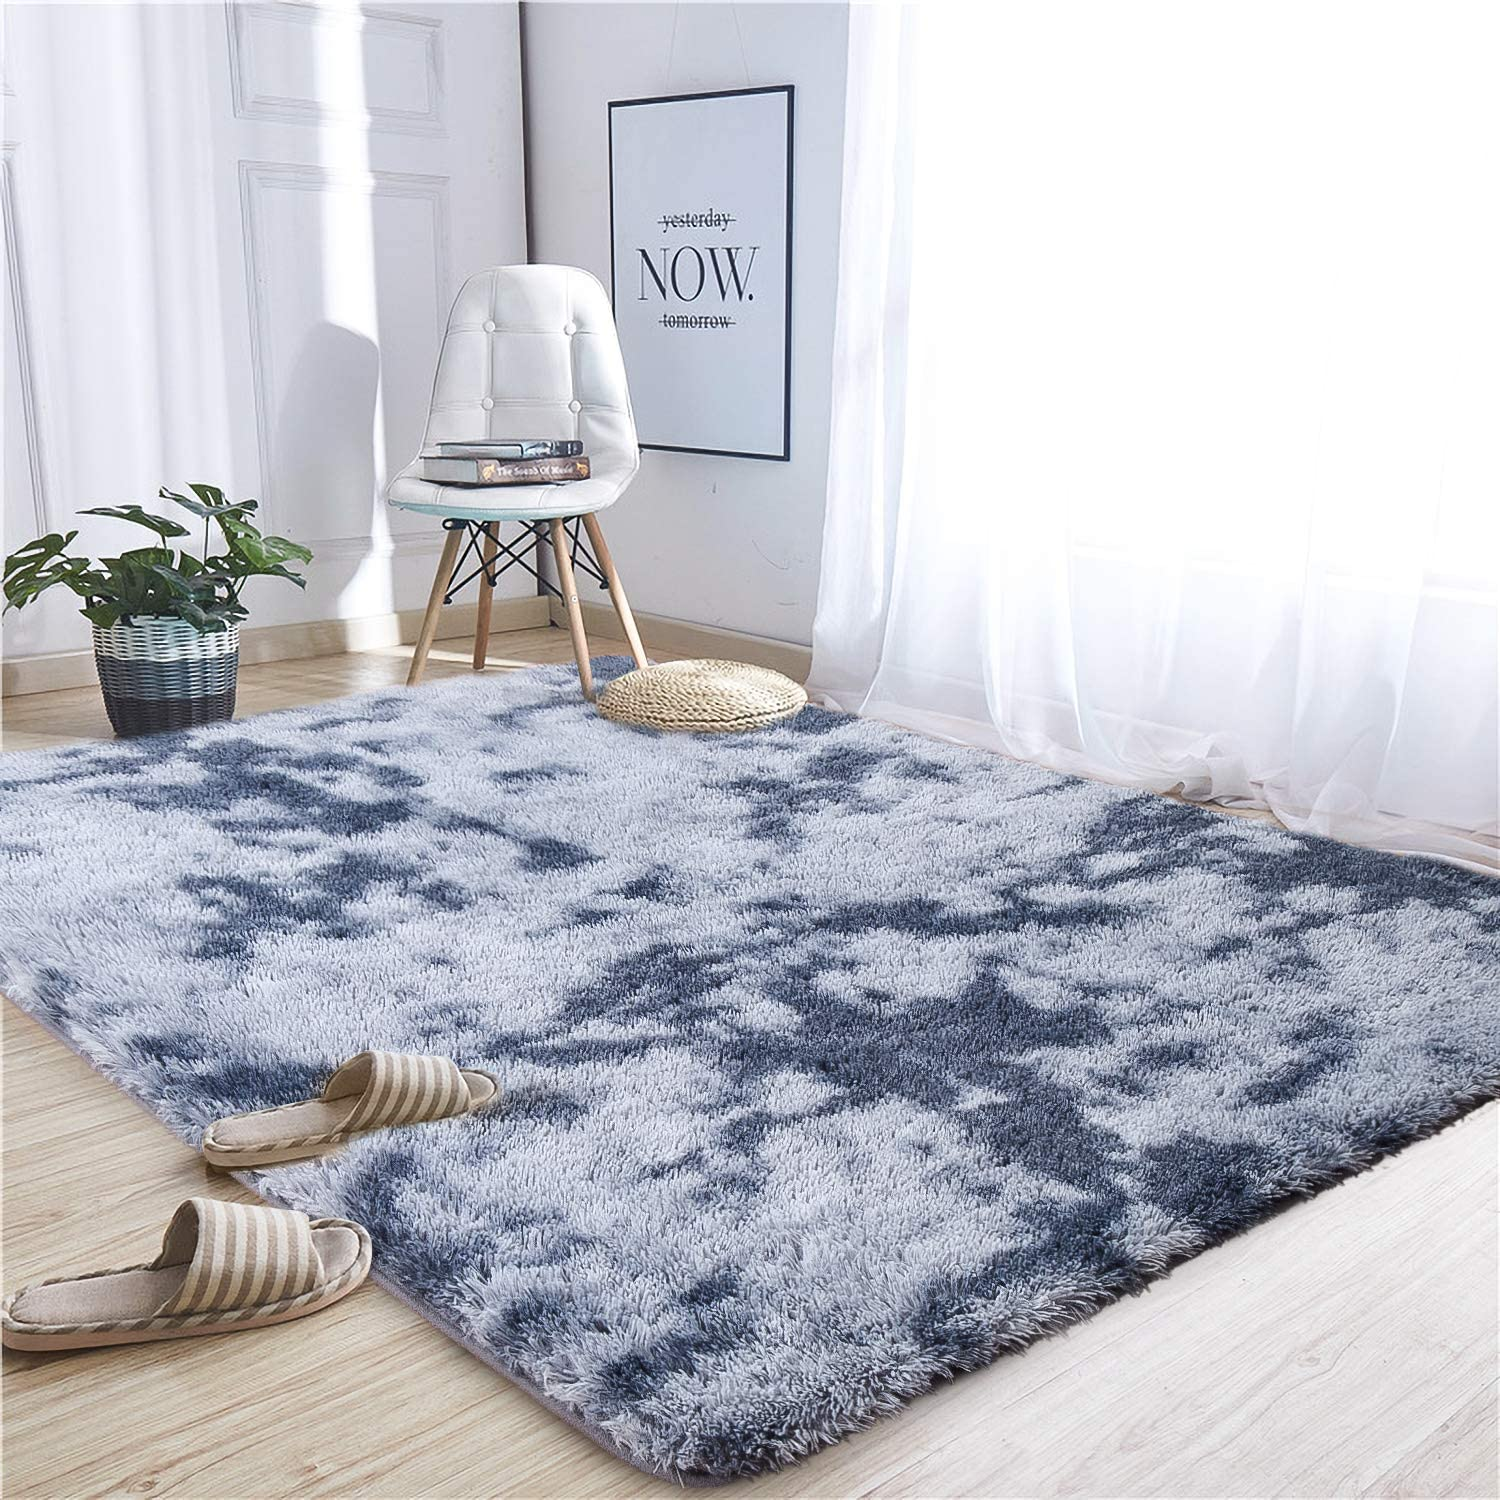 Noahas Abstract Shaggy Rug for Bedroom Ultra Soft Fluffy Carpets for Kids Nursery Teens Room Girls Boys Thick Accent Rugs Home Bedrooms Floor Decorative, 4 ft x 6 ft, Dark Blue